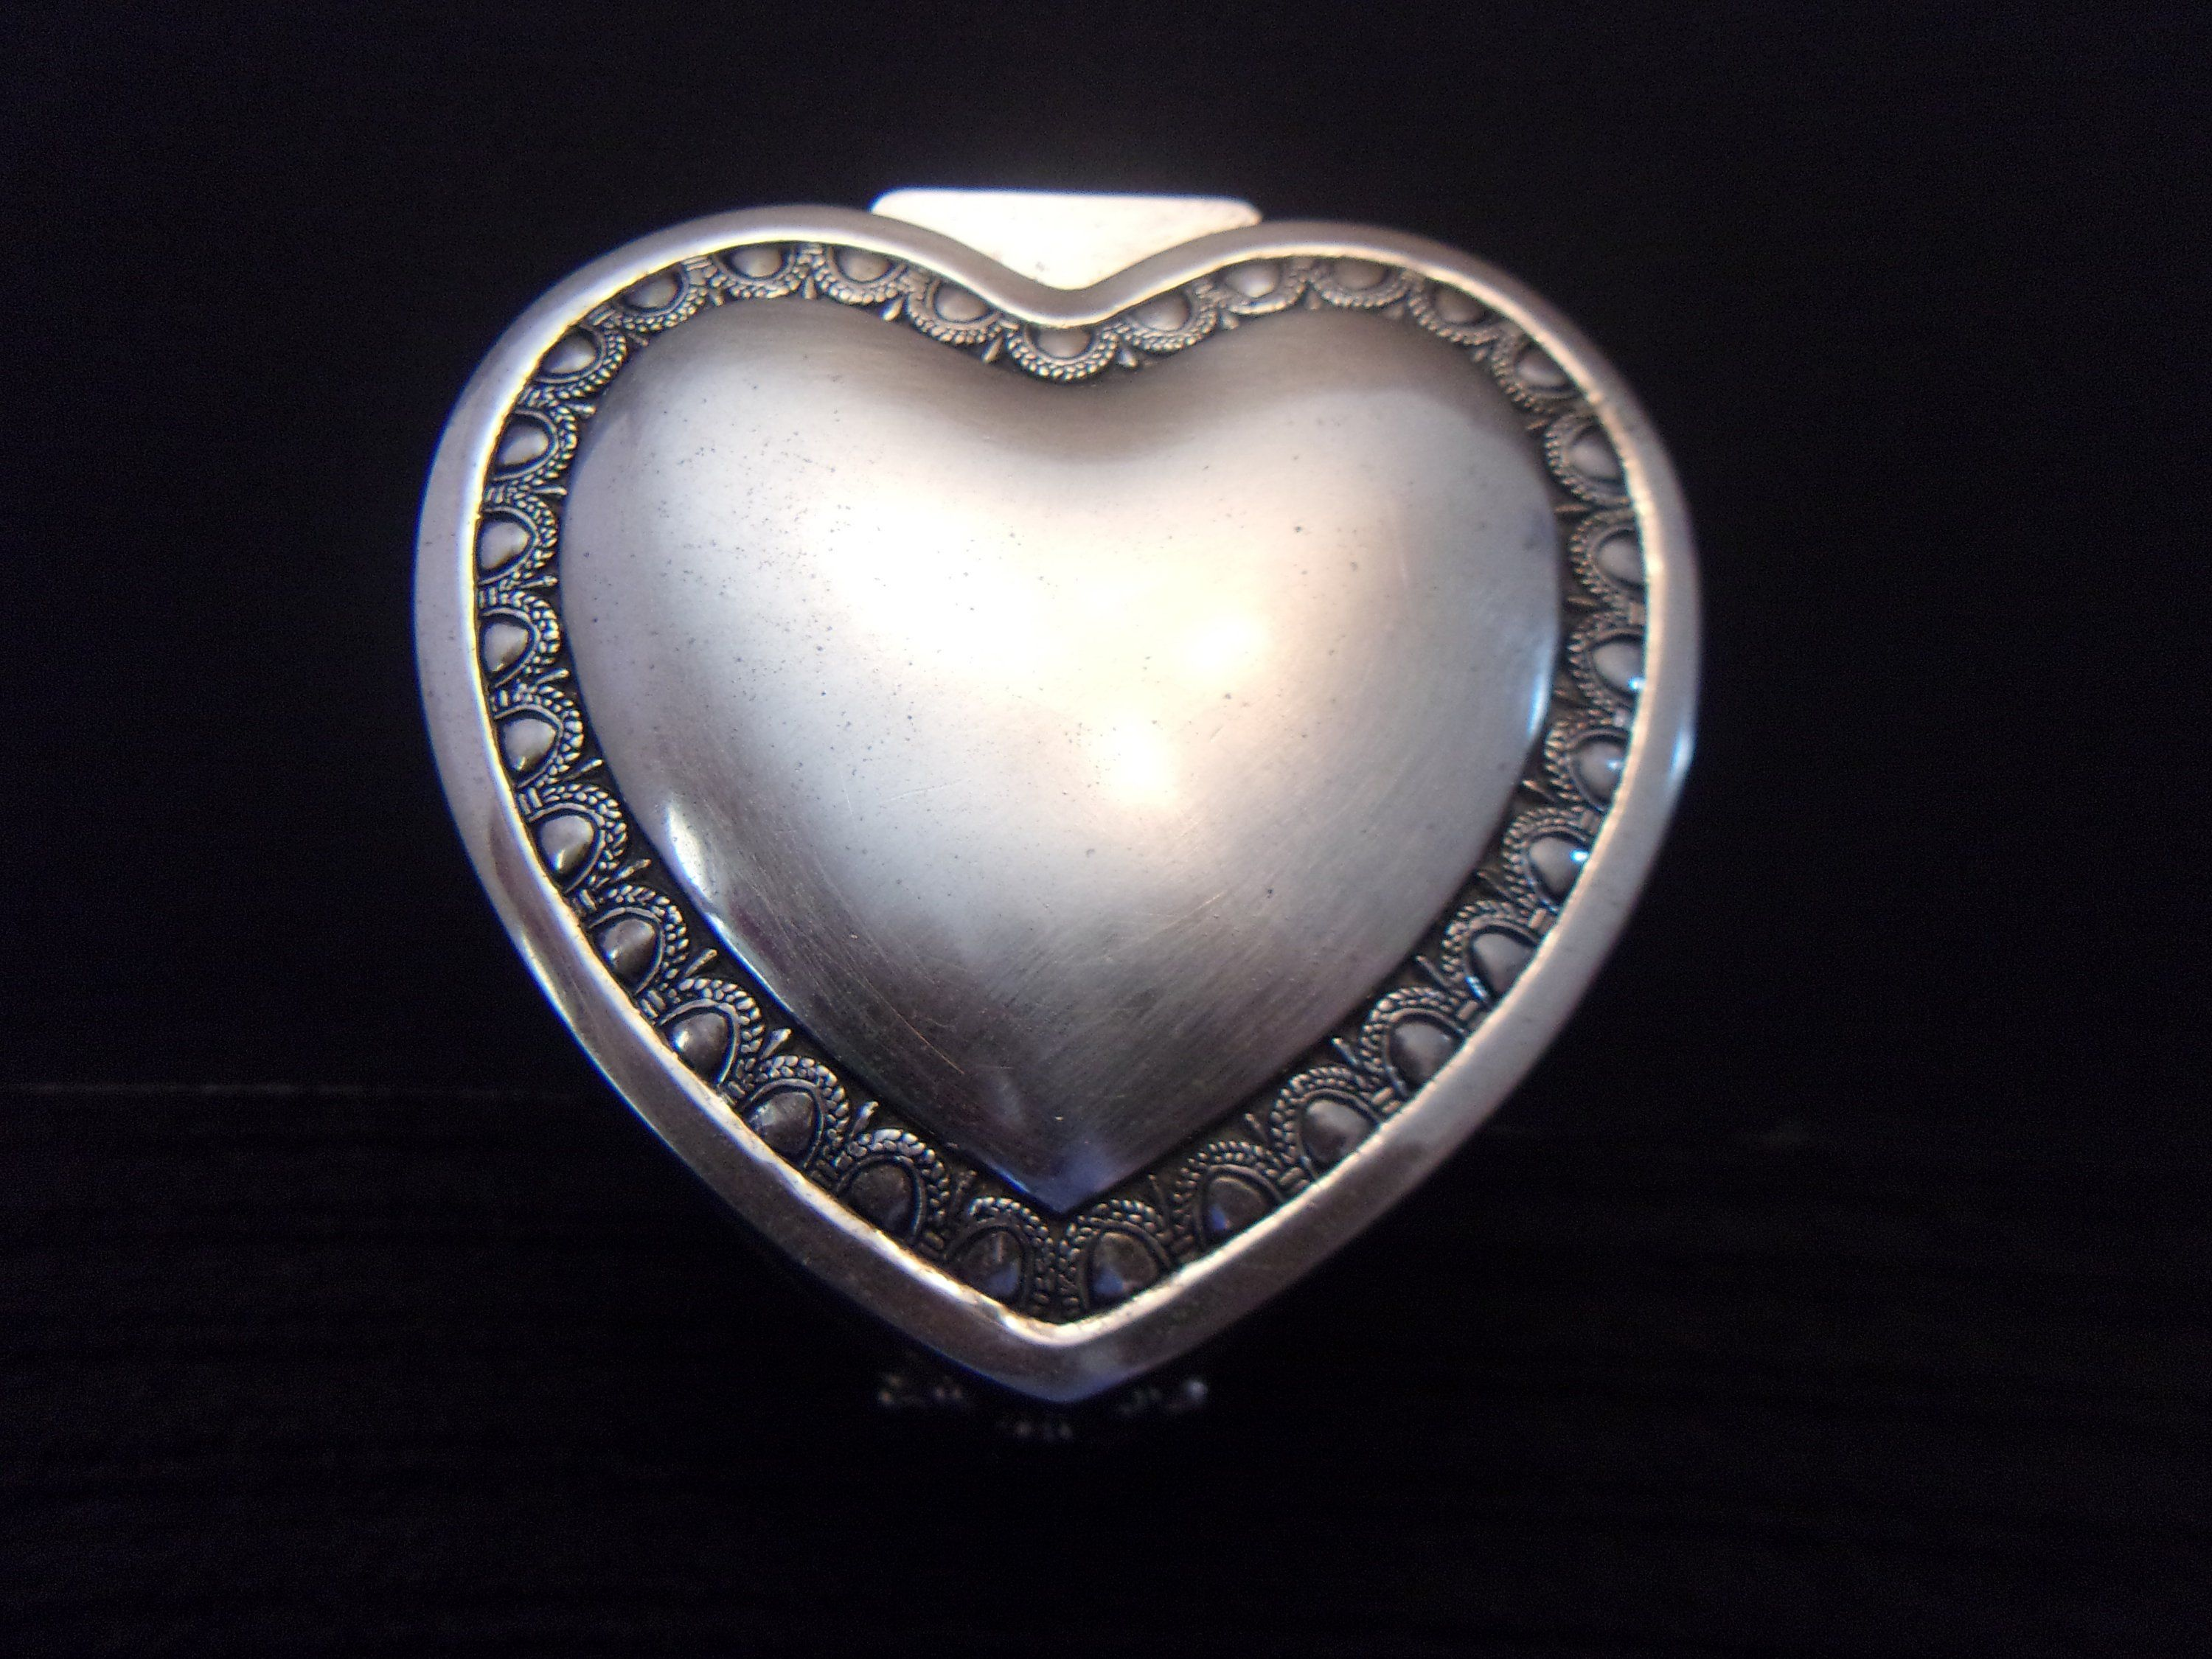 Silver Plated Heart Trinket Box Romantic Valentine S Day Collectible Jewelry Box Home Decor Jewelry Collection Heart Jewelry Jewelry Box